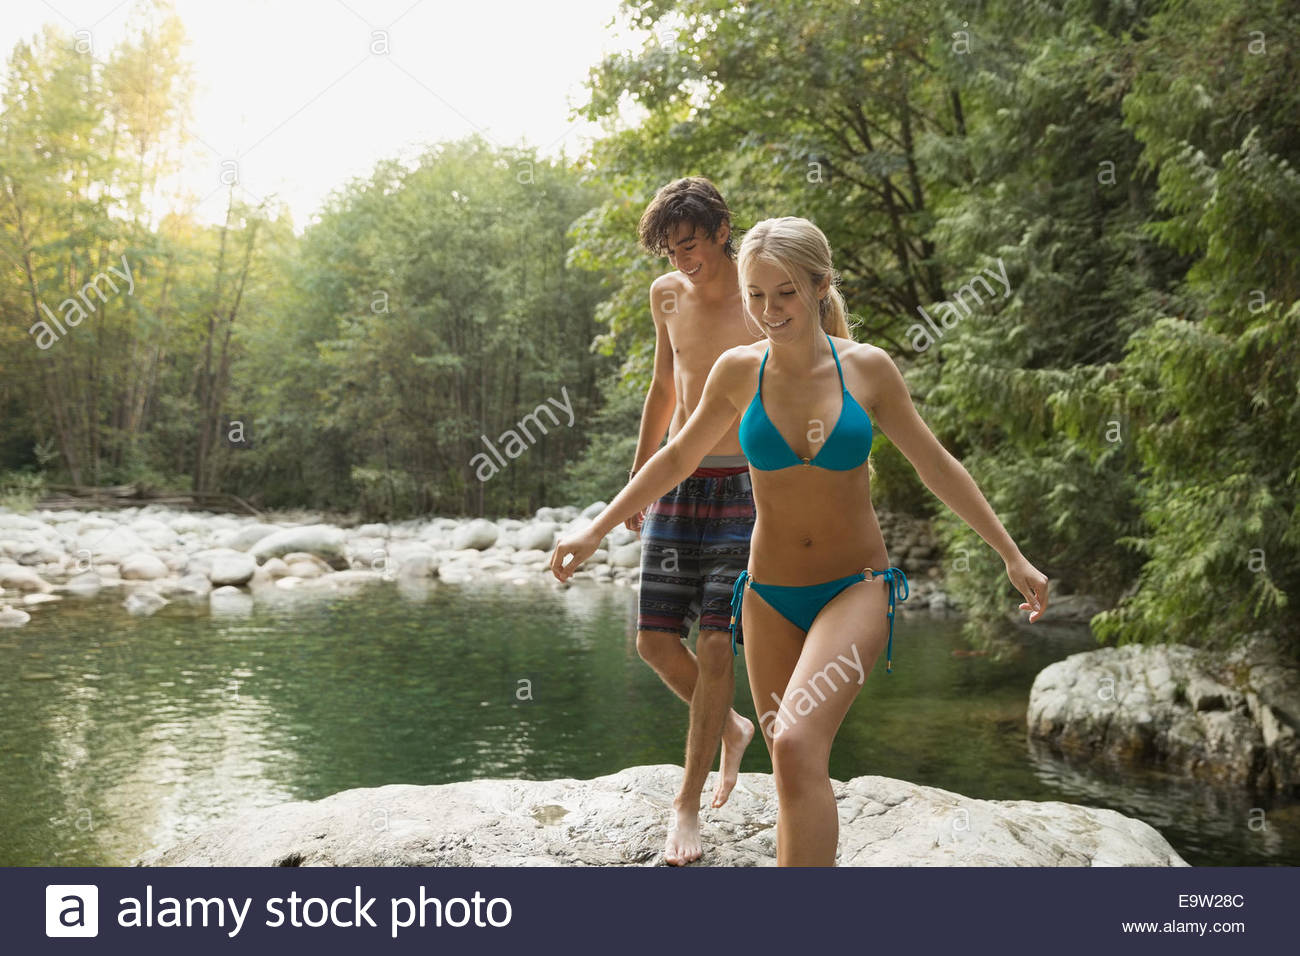 Couple on rock at swimming hole - Stock Image